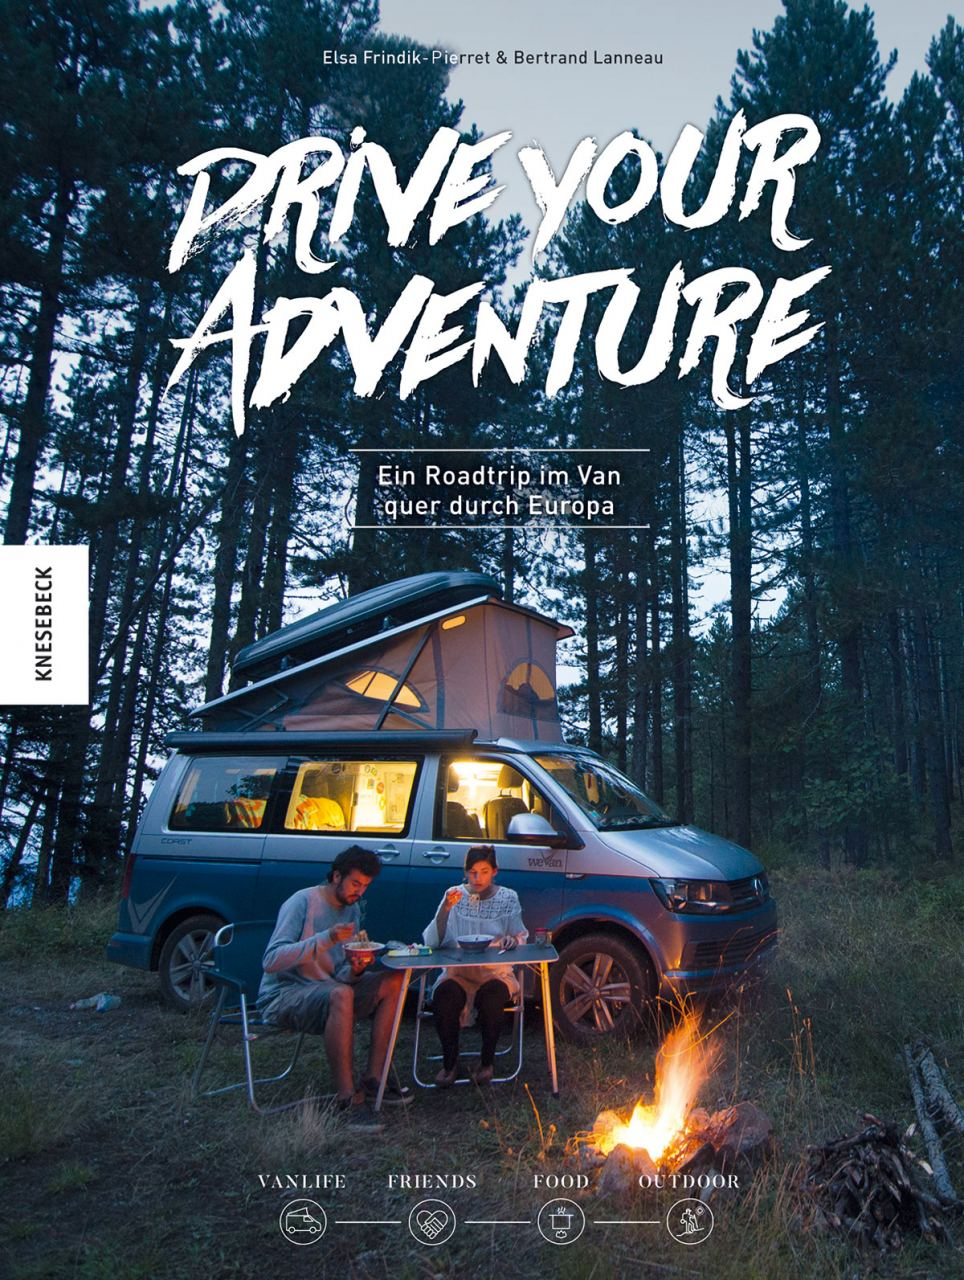 Drive your Adventure